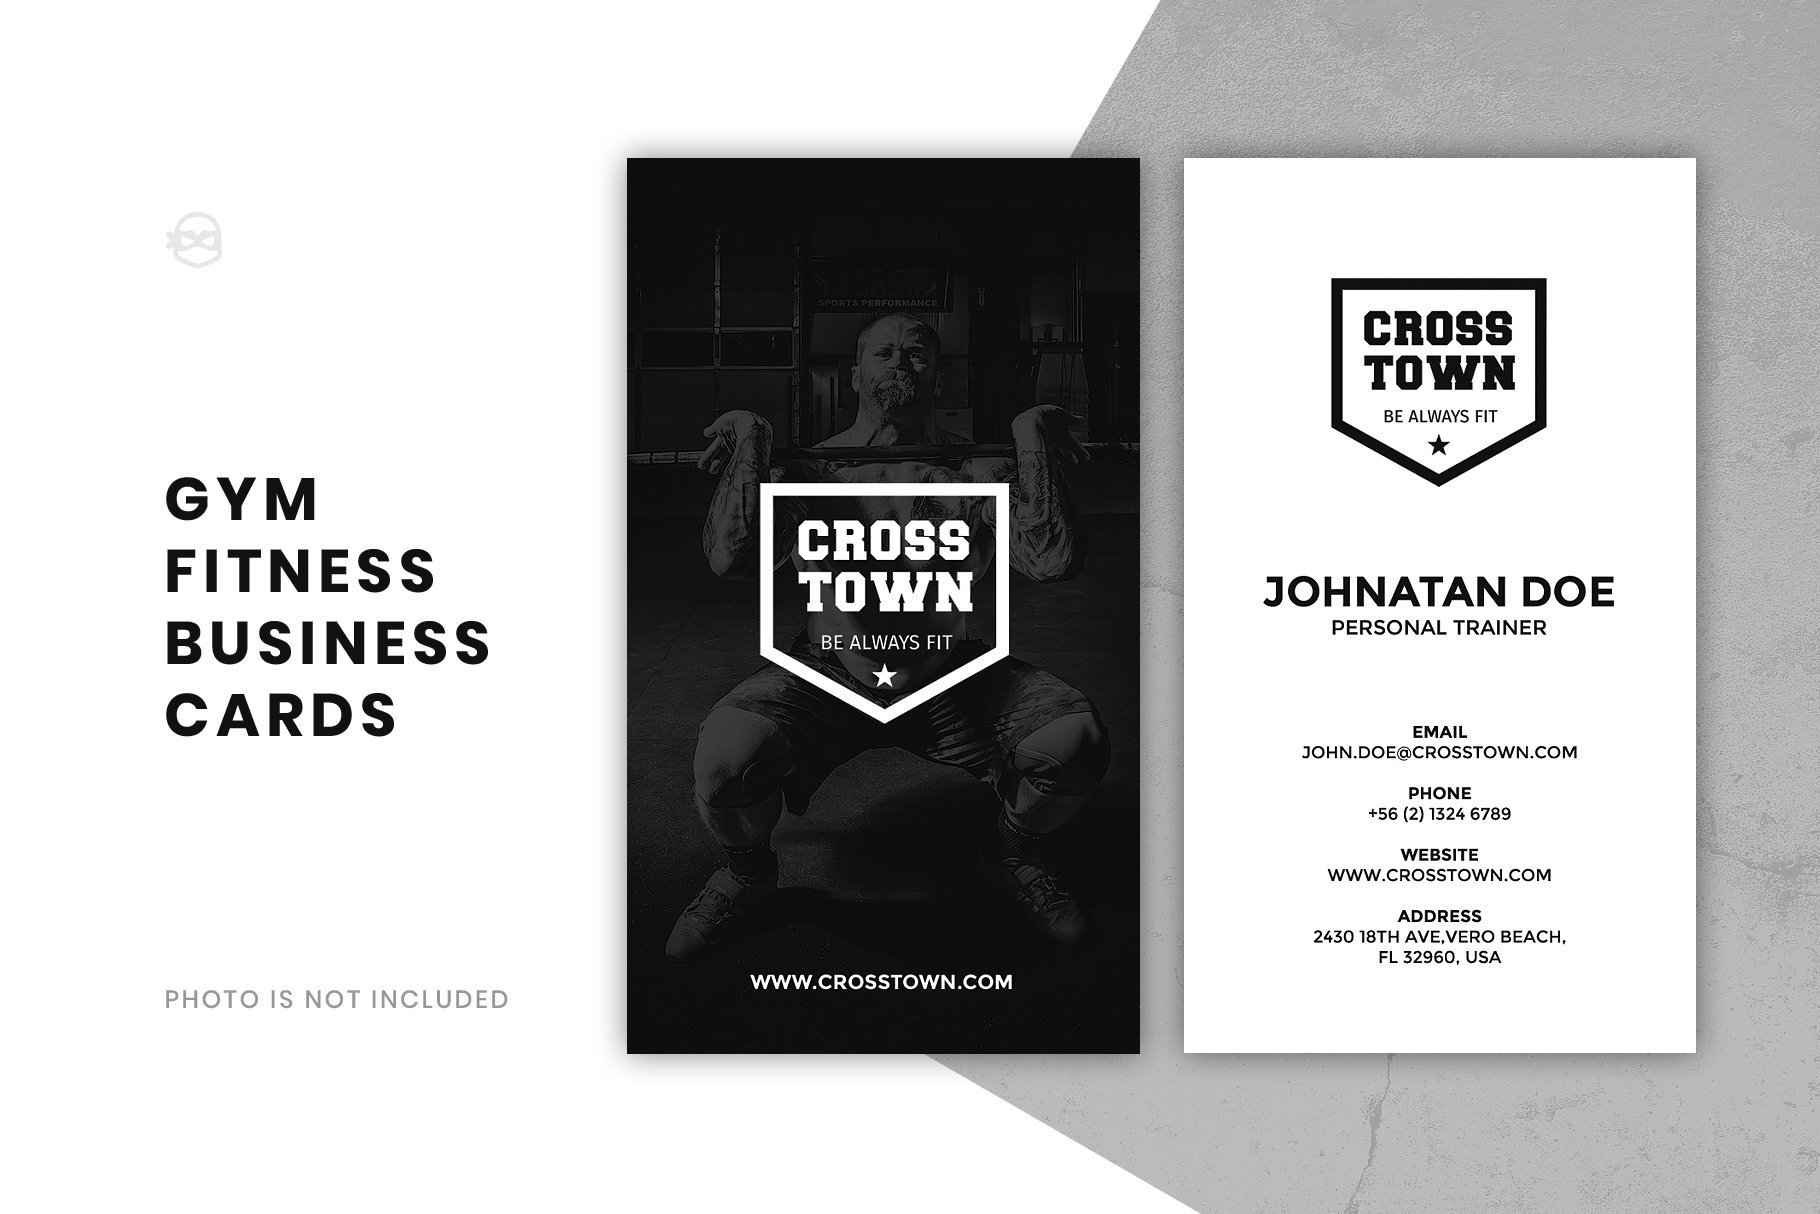 Gym Fitness Business Card ~ Business Card Templates ~ Creative Market